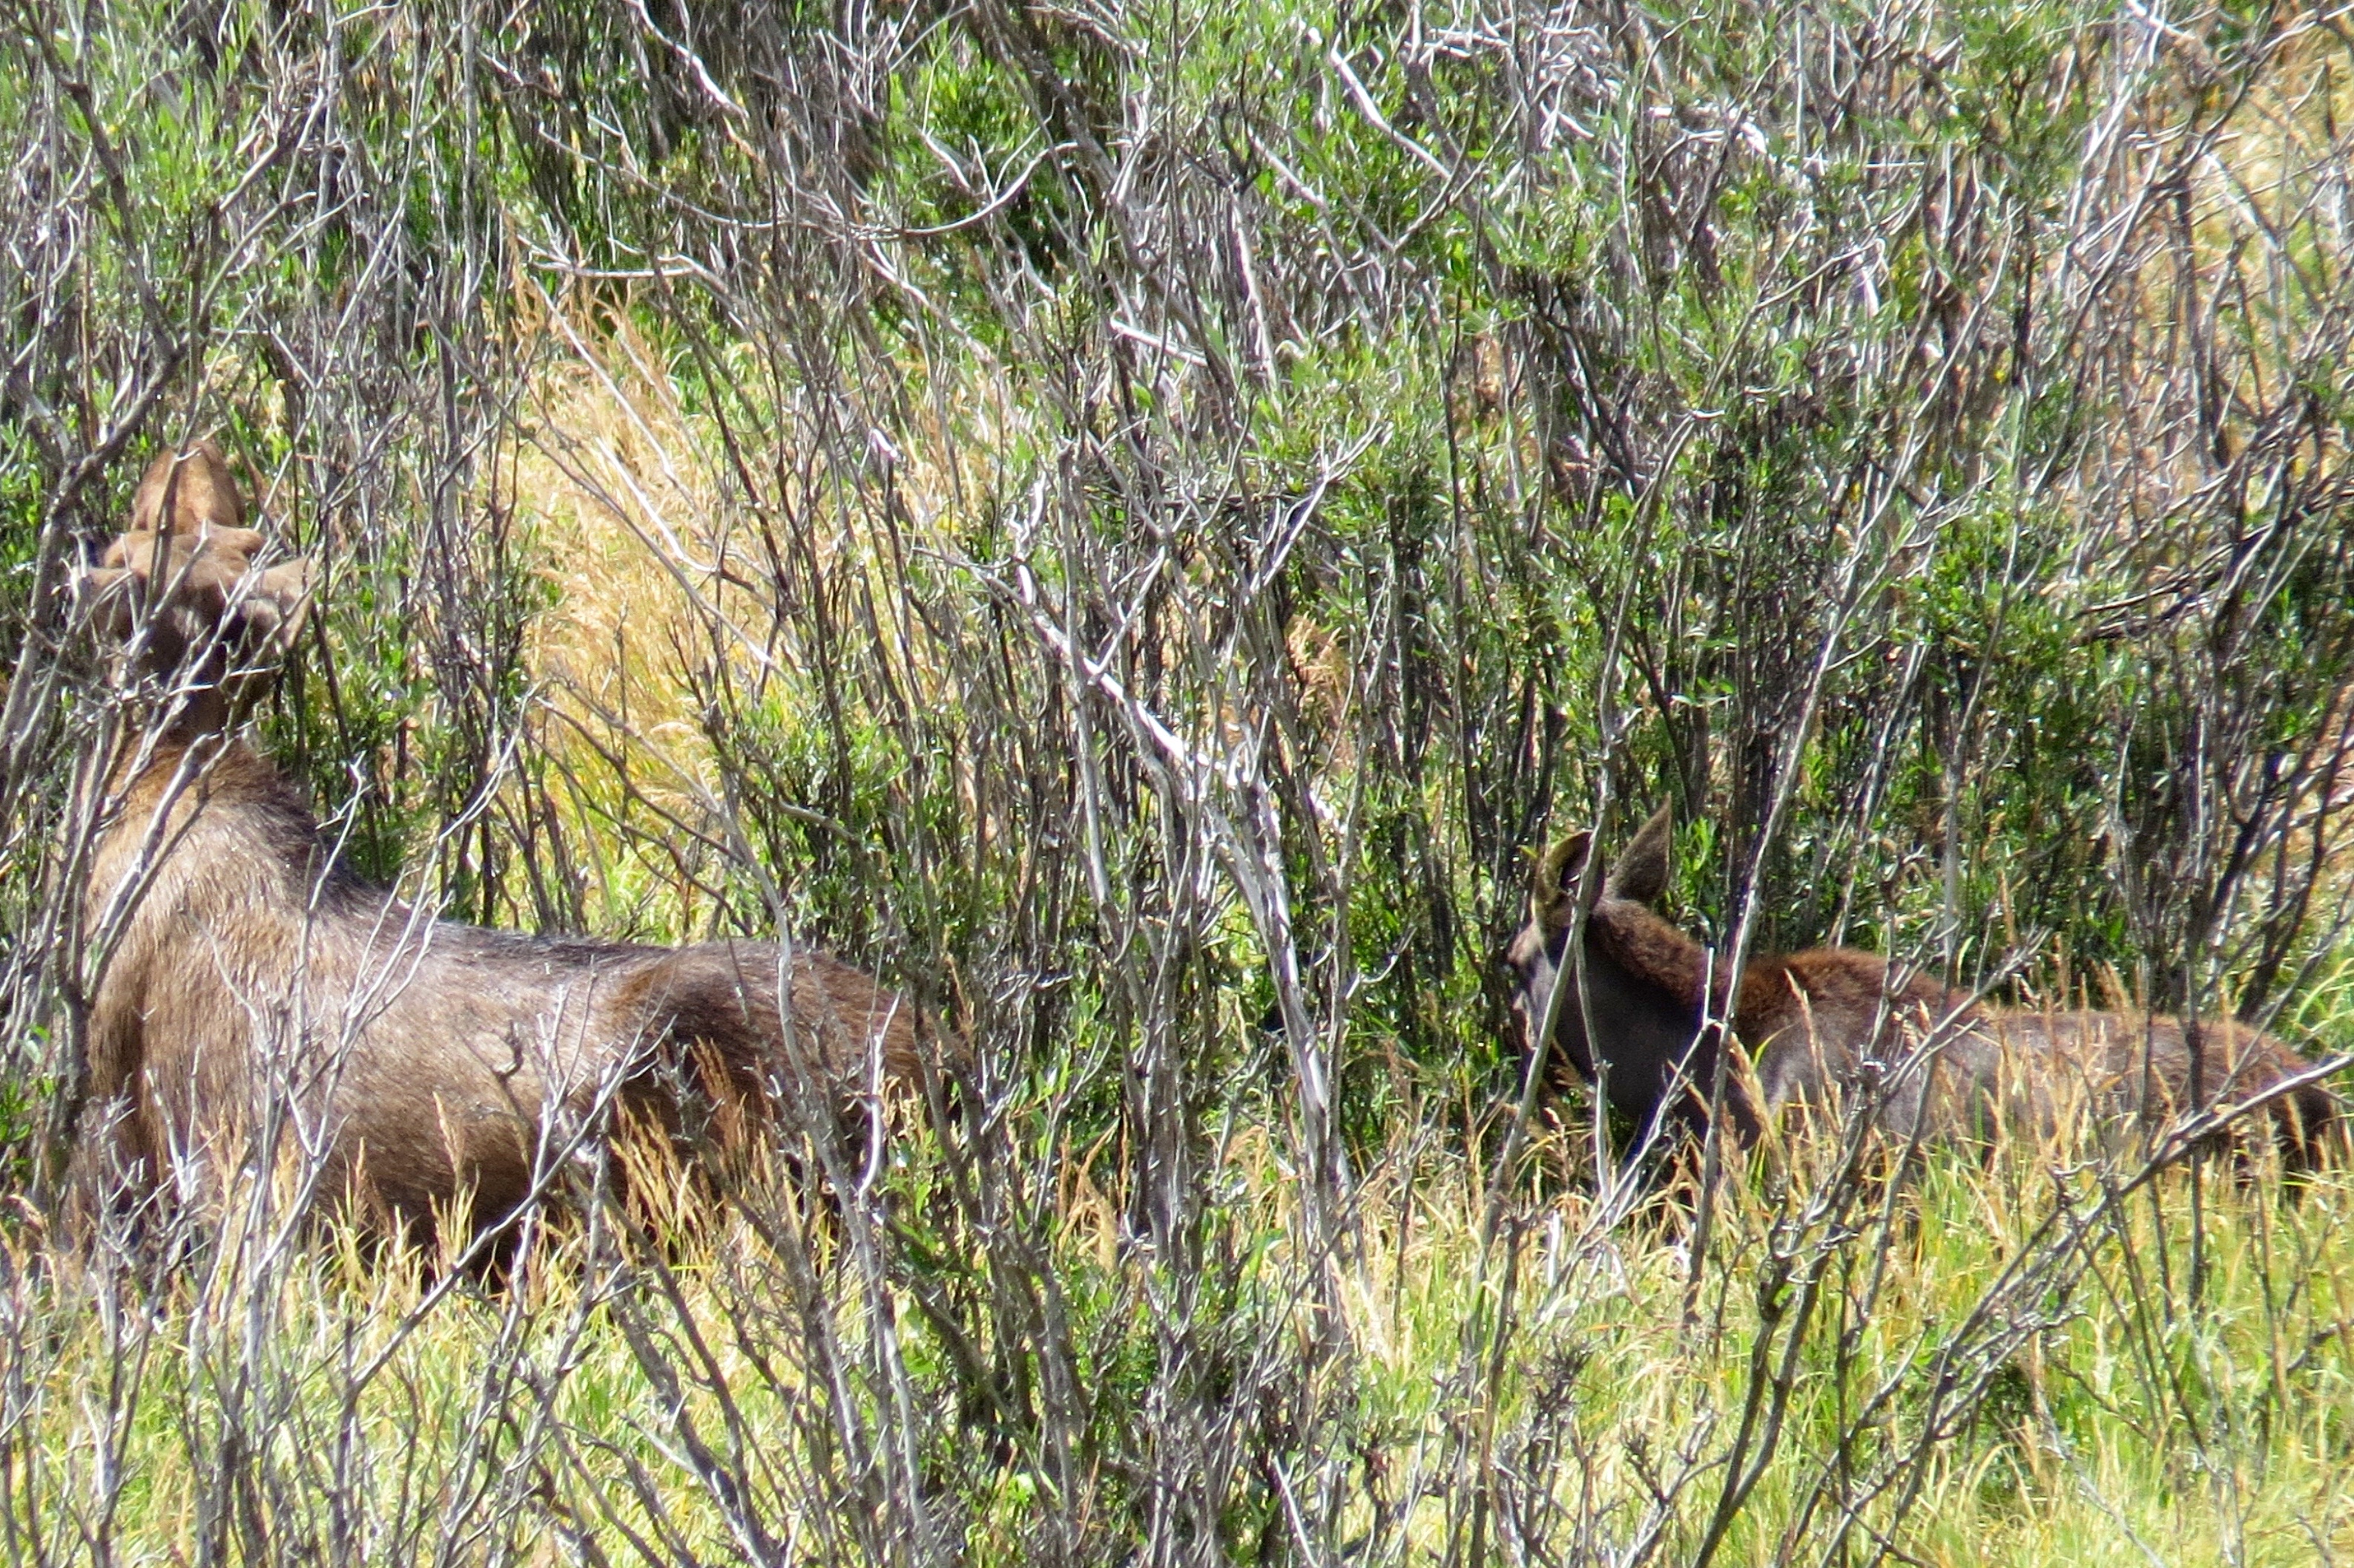 IN THE WILLOWS AT ROCKY MOUNTAIN NATIONAL PARK, MAMA AND BABY MOOSE